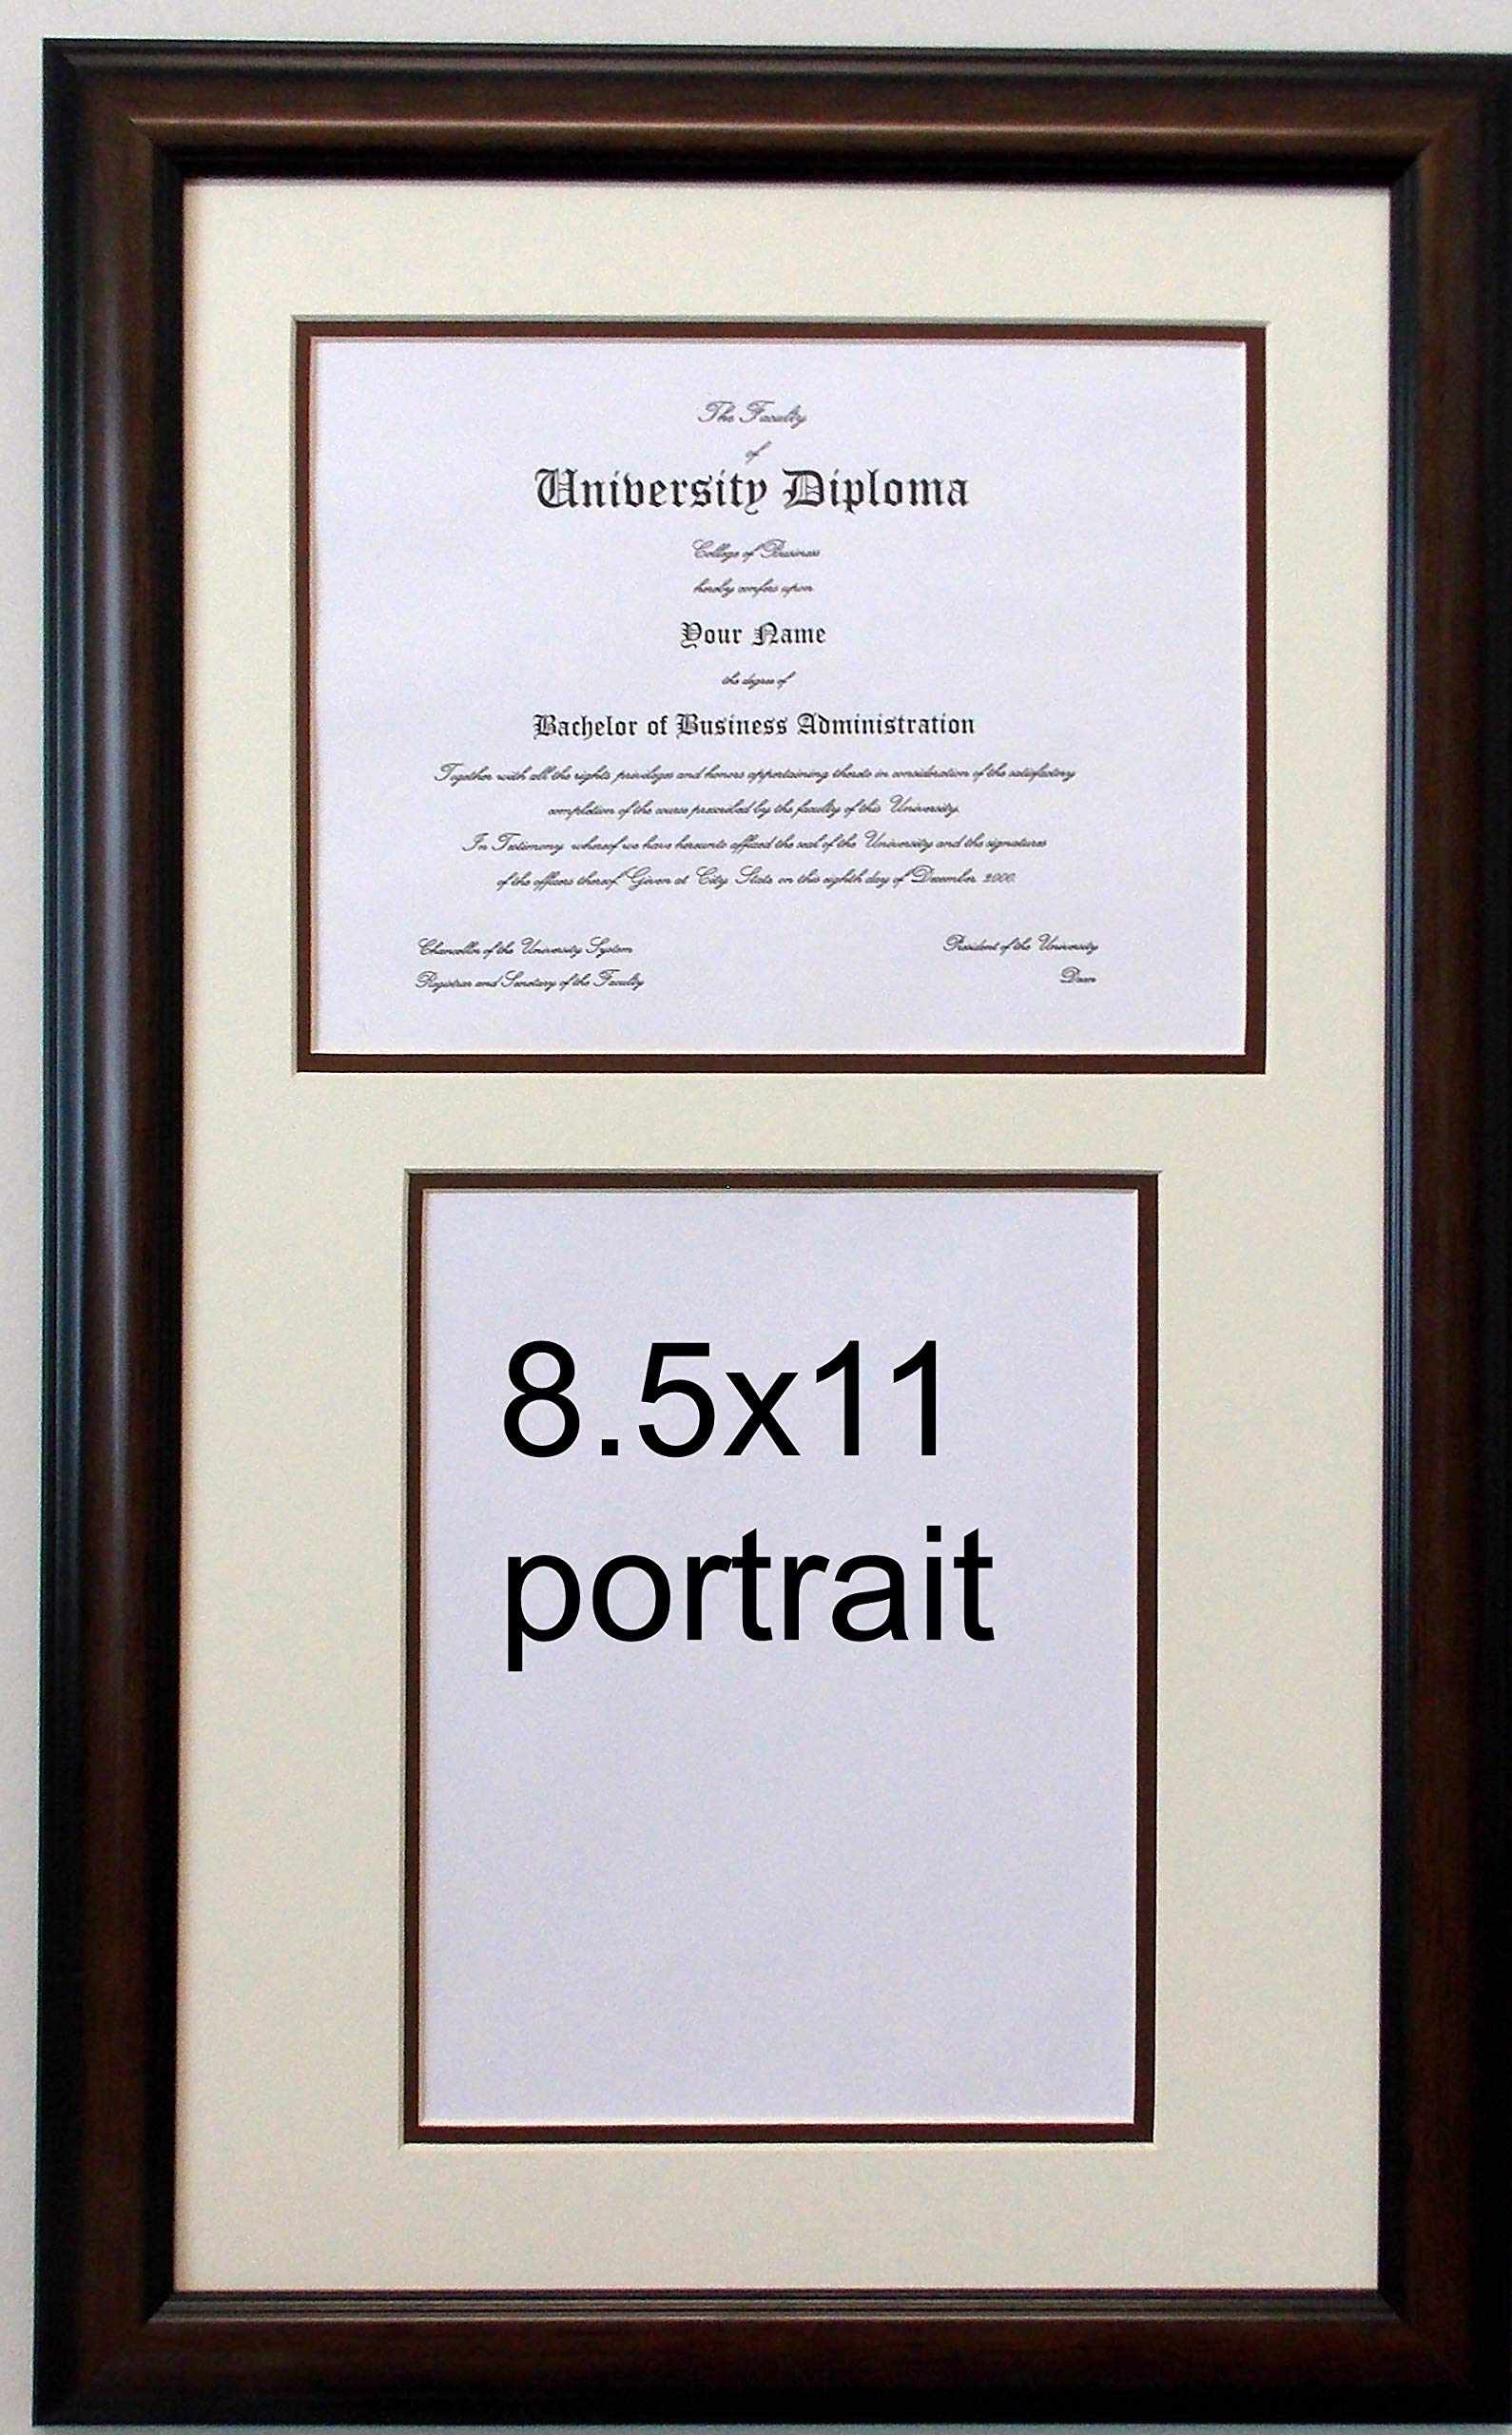 Double Diploma Reverse Document Certificate Openings Wood Picture Frame for Two 8.5x11 one Landscape and one Portrait